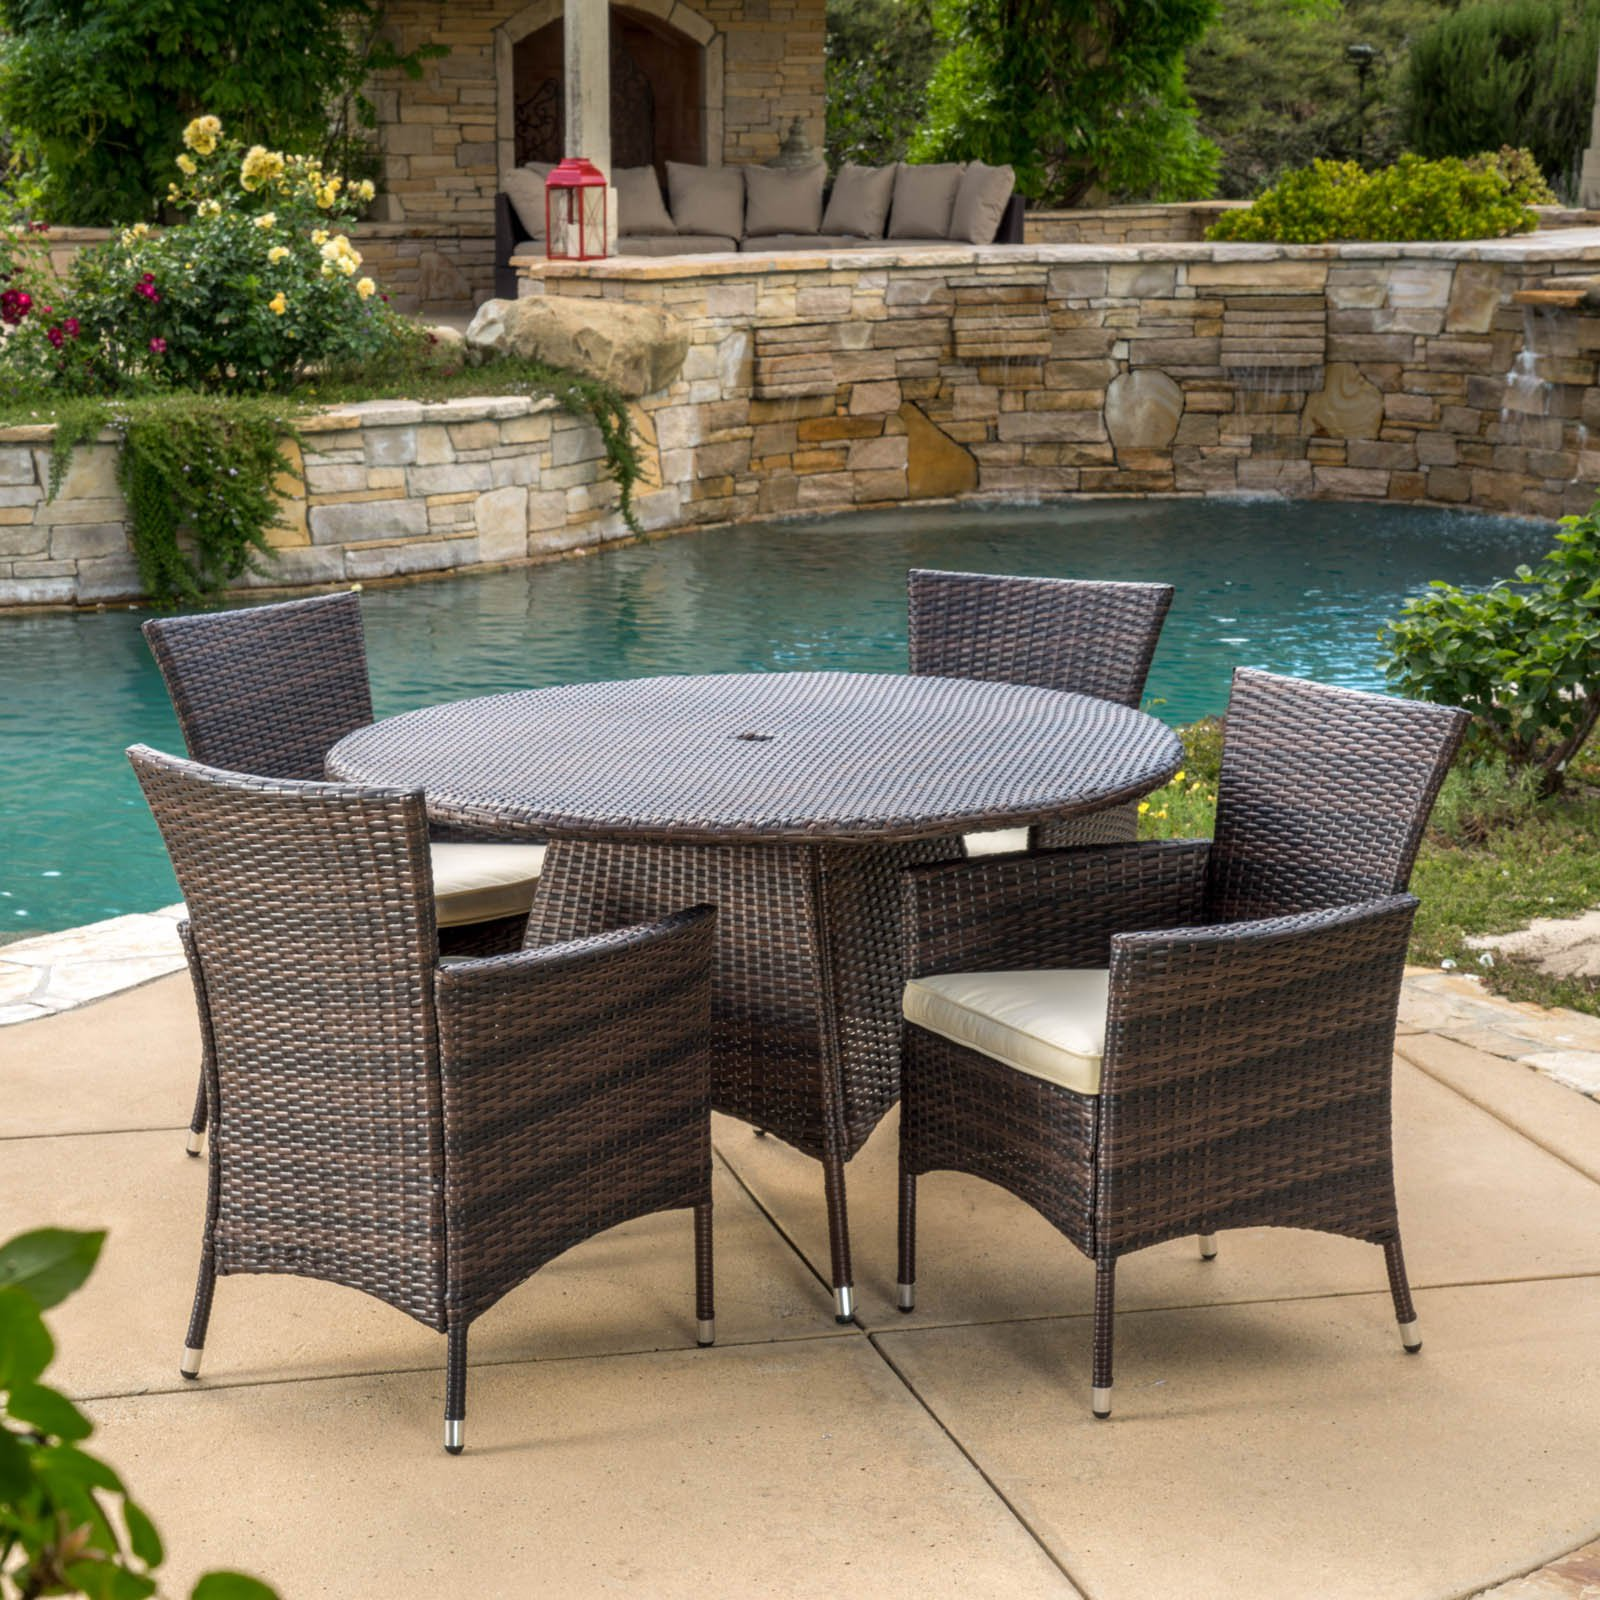 Best Selling Home Decor Furniture Madison Wicker 5 Piece Round Patio Dining Room Set with Cushions by Best Selling Home Decor Furniture LLC